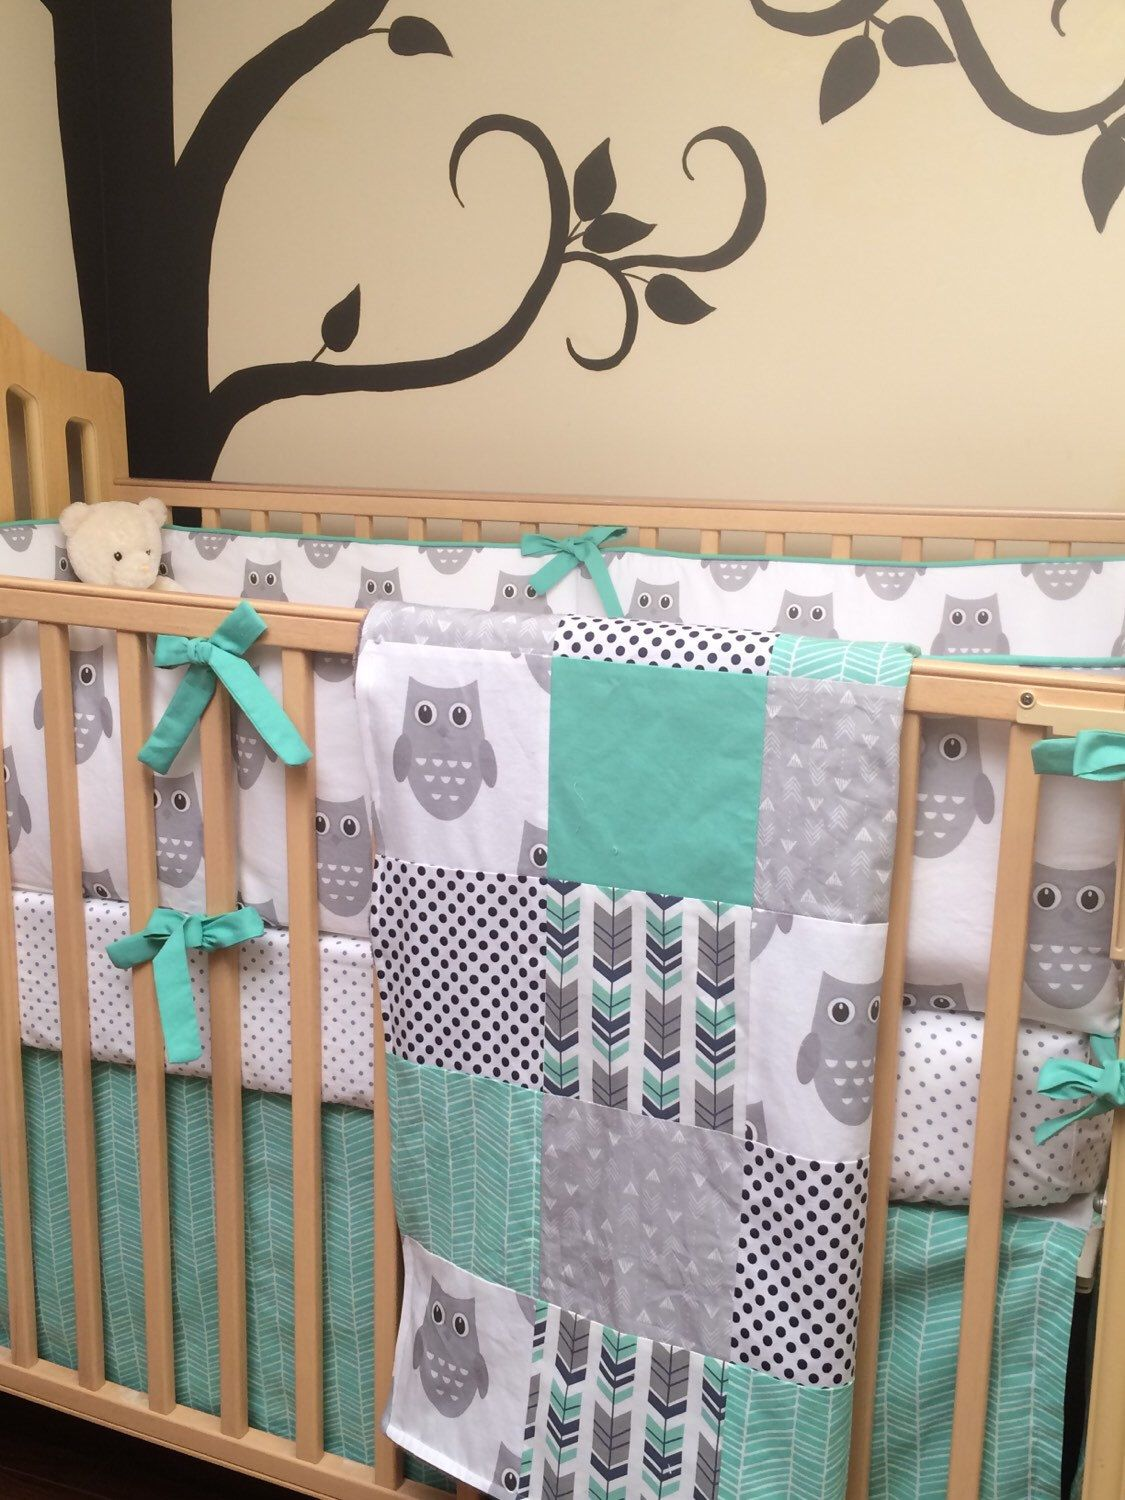 Pin By Devionare Jones On Baby Room Pinterest Cribs And Owls